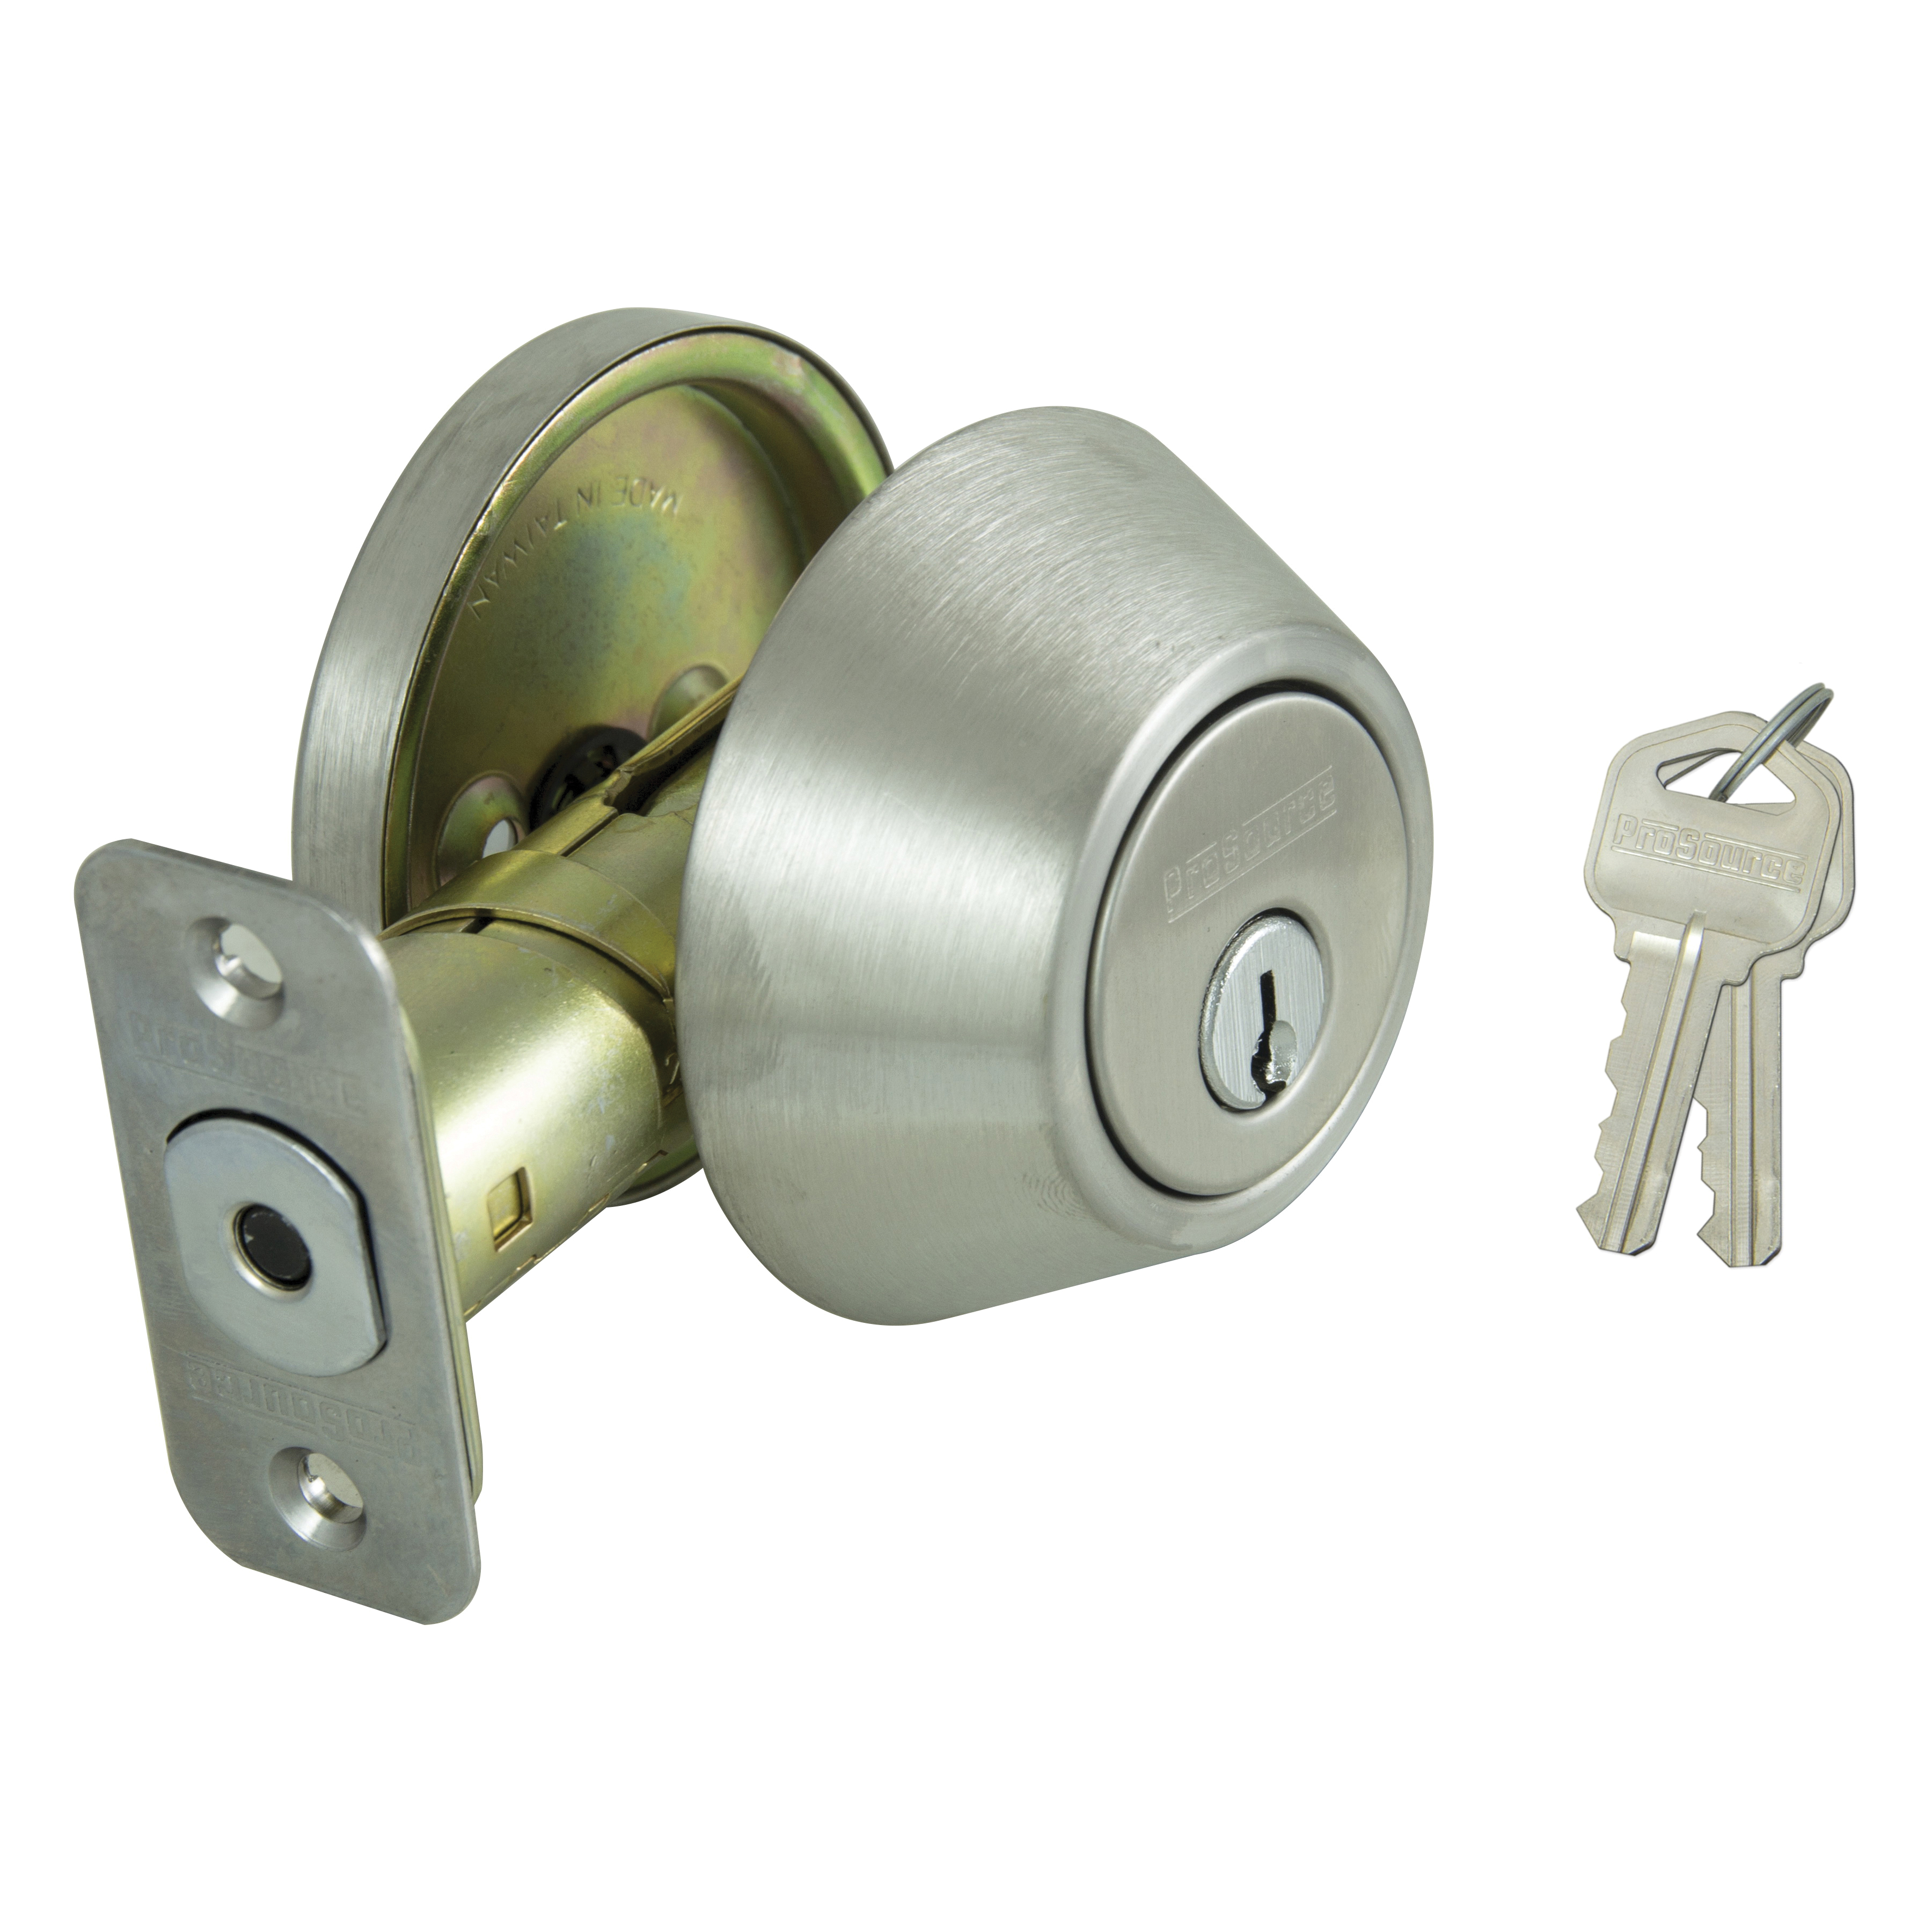 Picture of ProSource D261-RU5V Deadbolt, Stainless Steel, 2-3/8 to 2-3/4 in Backset